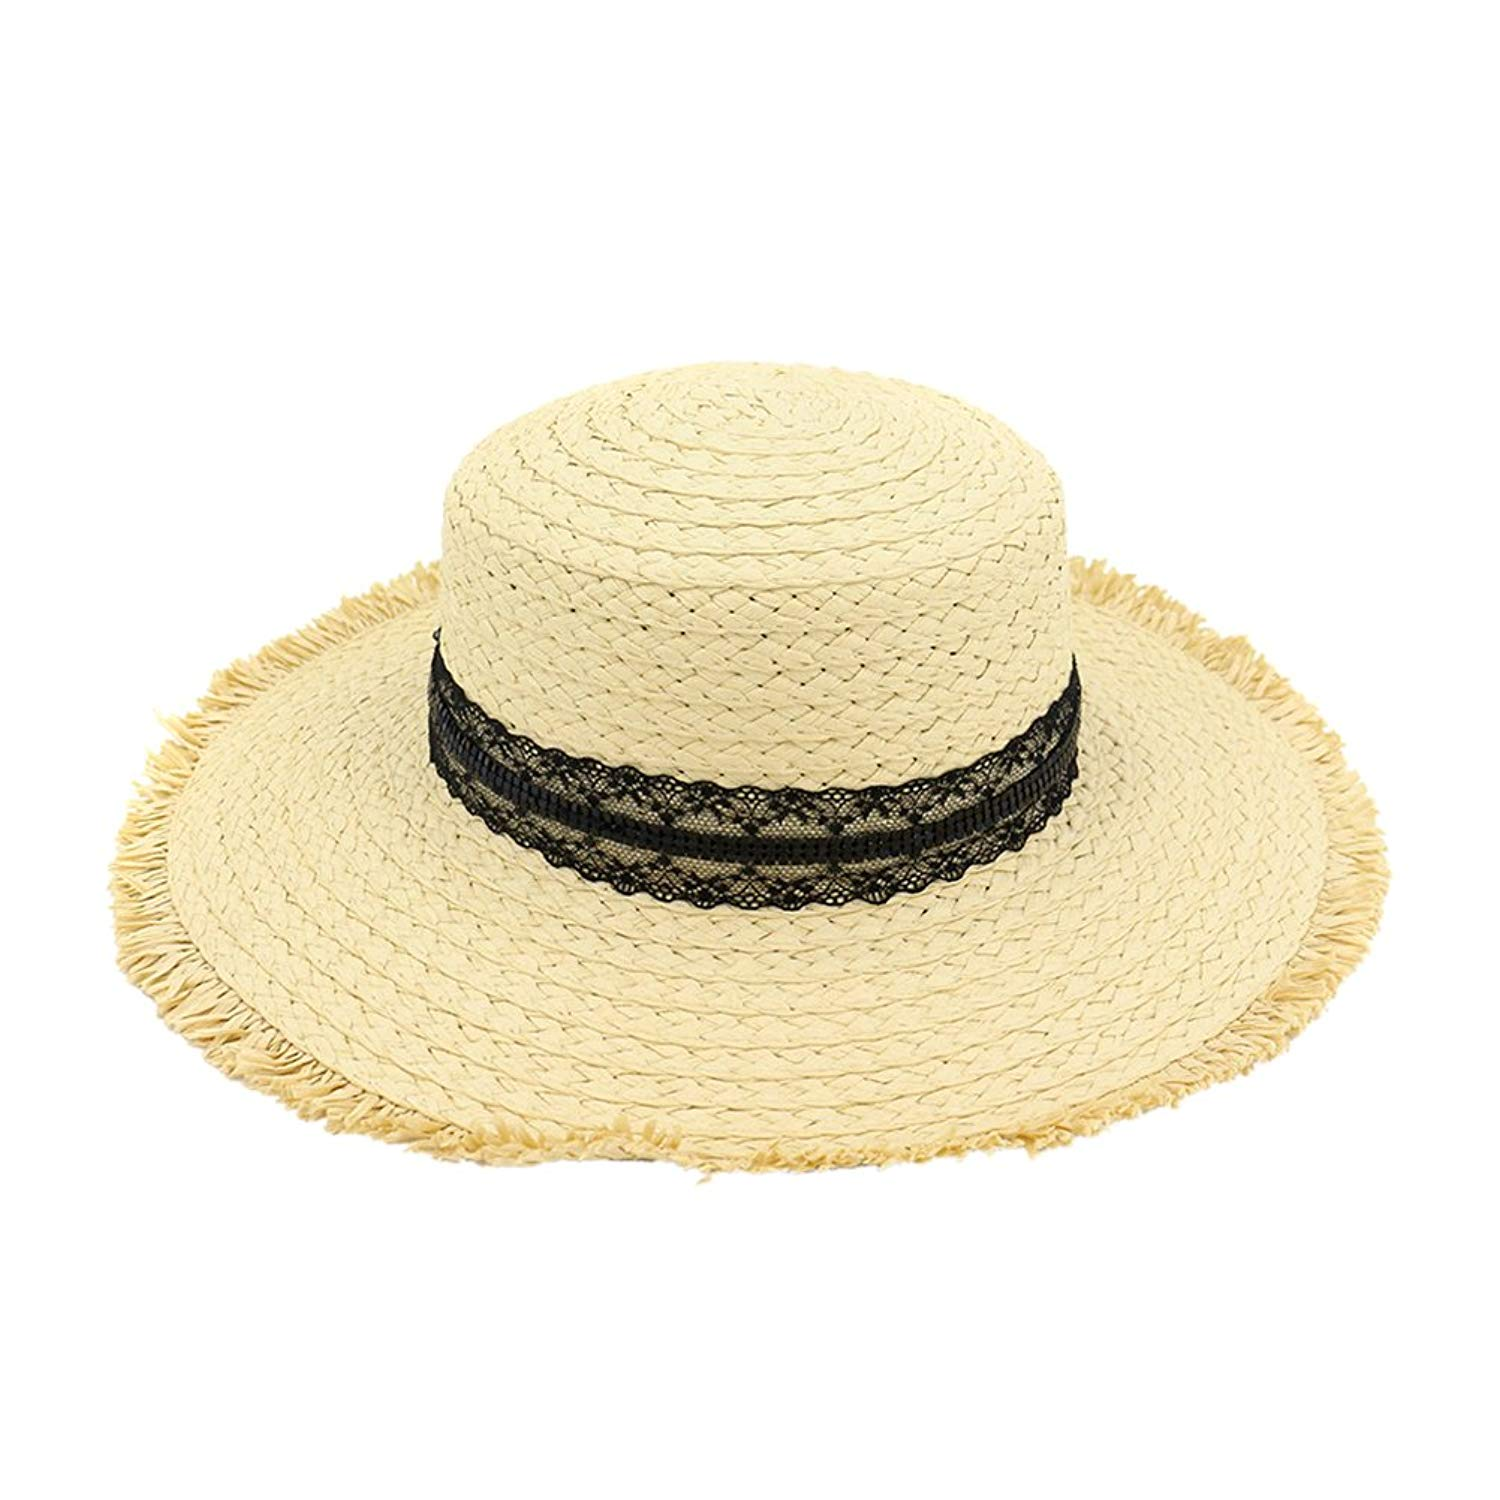 49a32d804964b2 Get Quotations · Zhhlinyuan Straw Boater Hat ladies Sun hat Ribbon Round Flat  Top Sun Protection